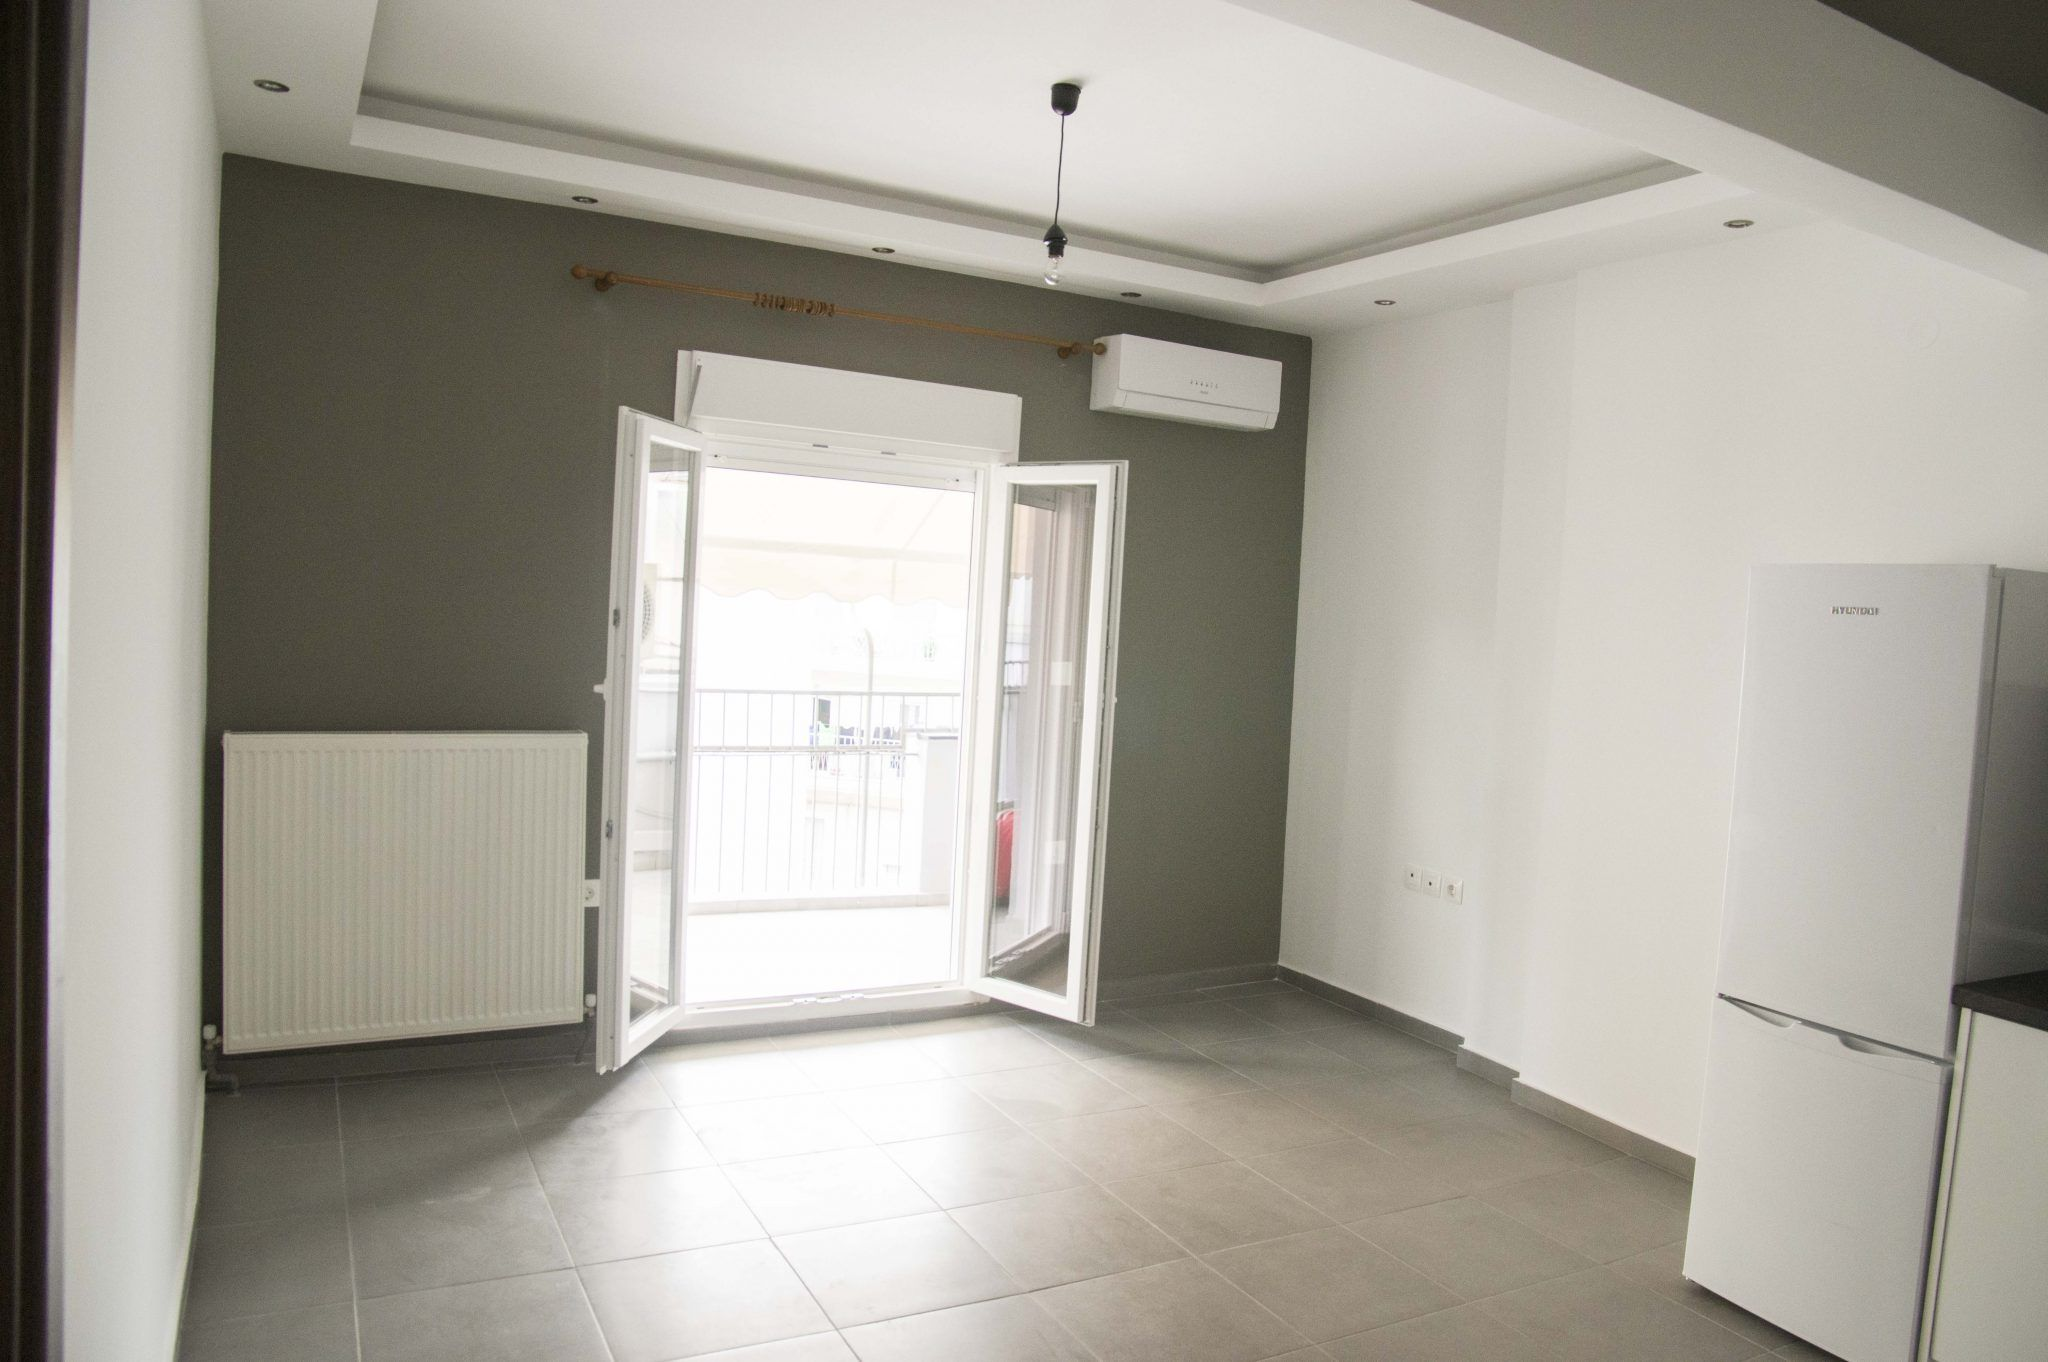 AFTER: Thessaloniki 1 Bed Flat Greece Full Renovation A very ...